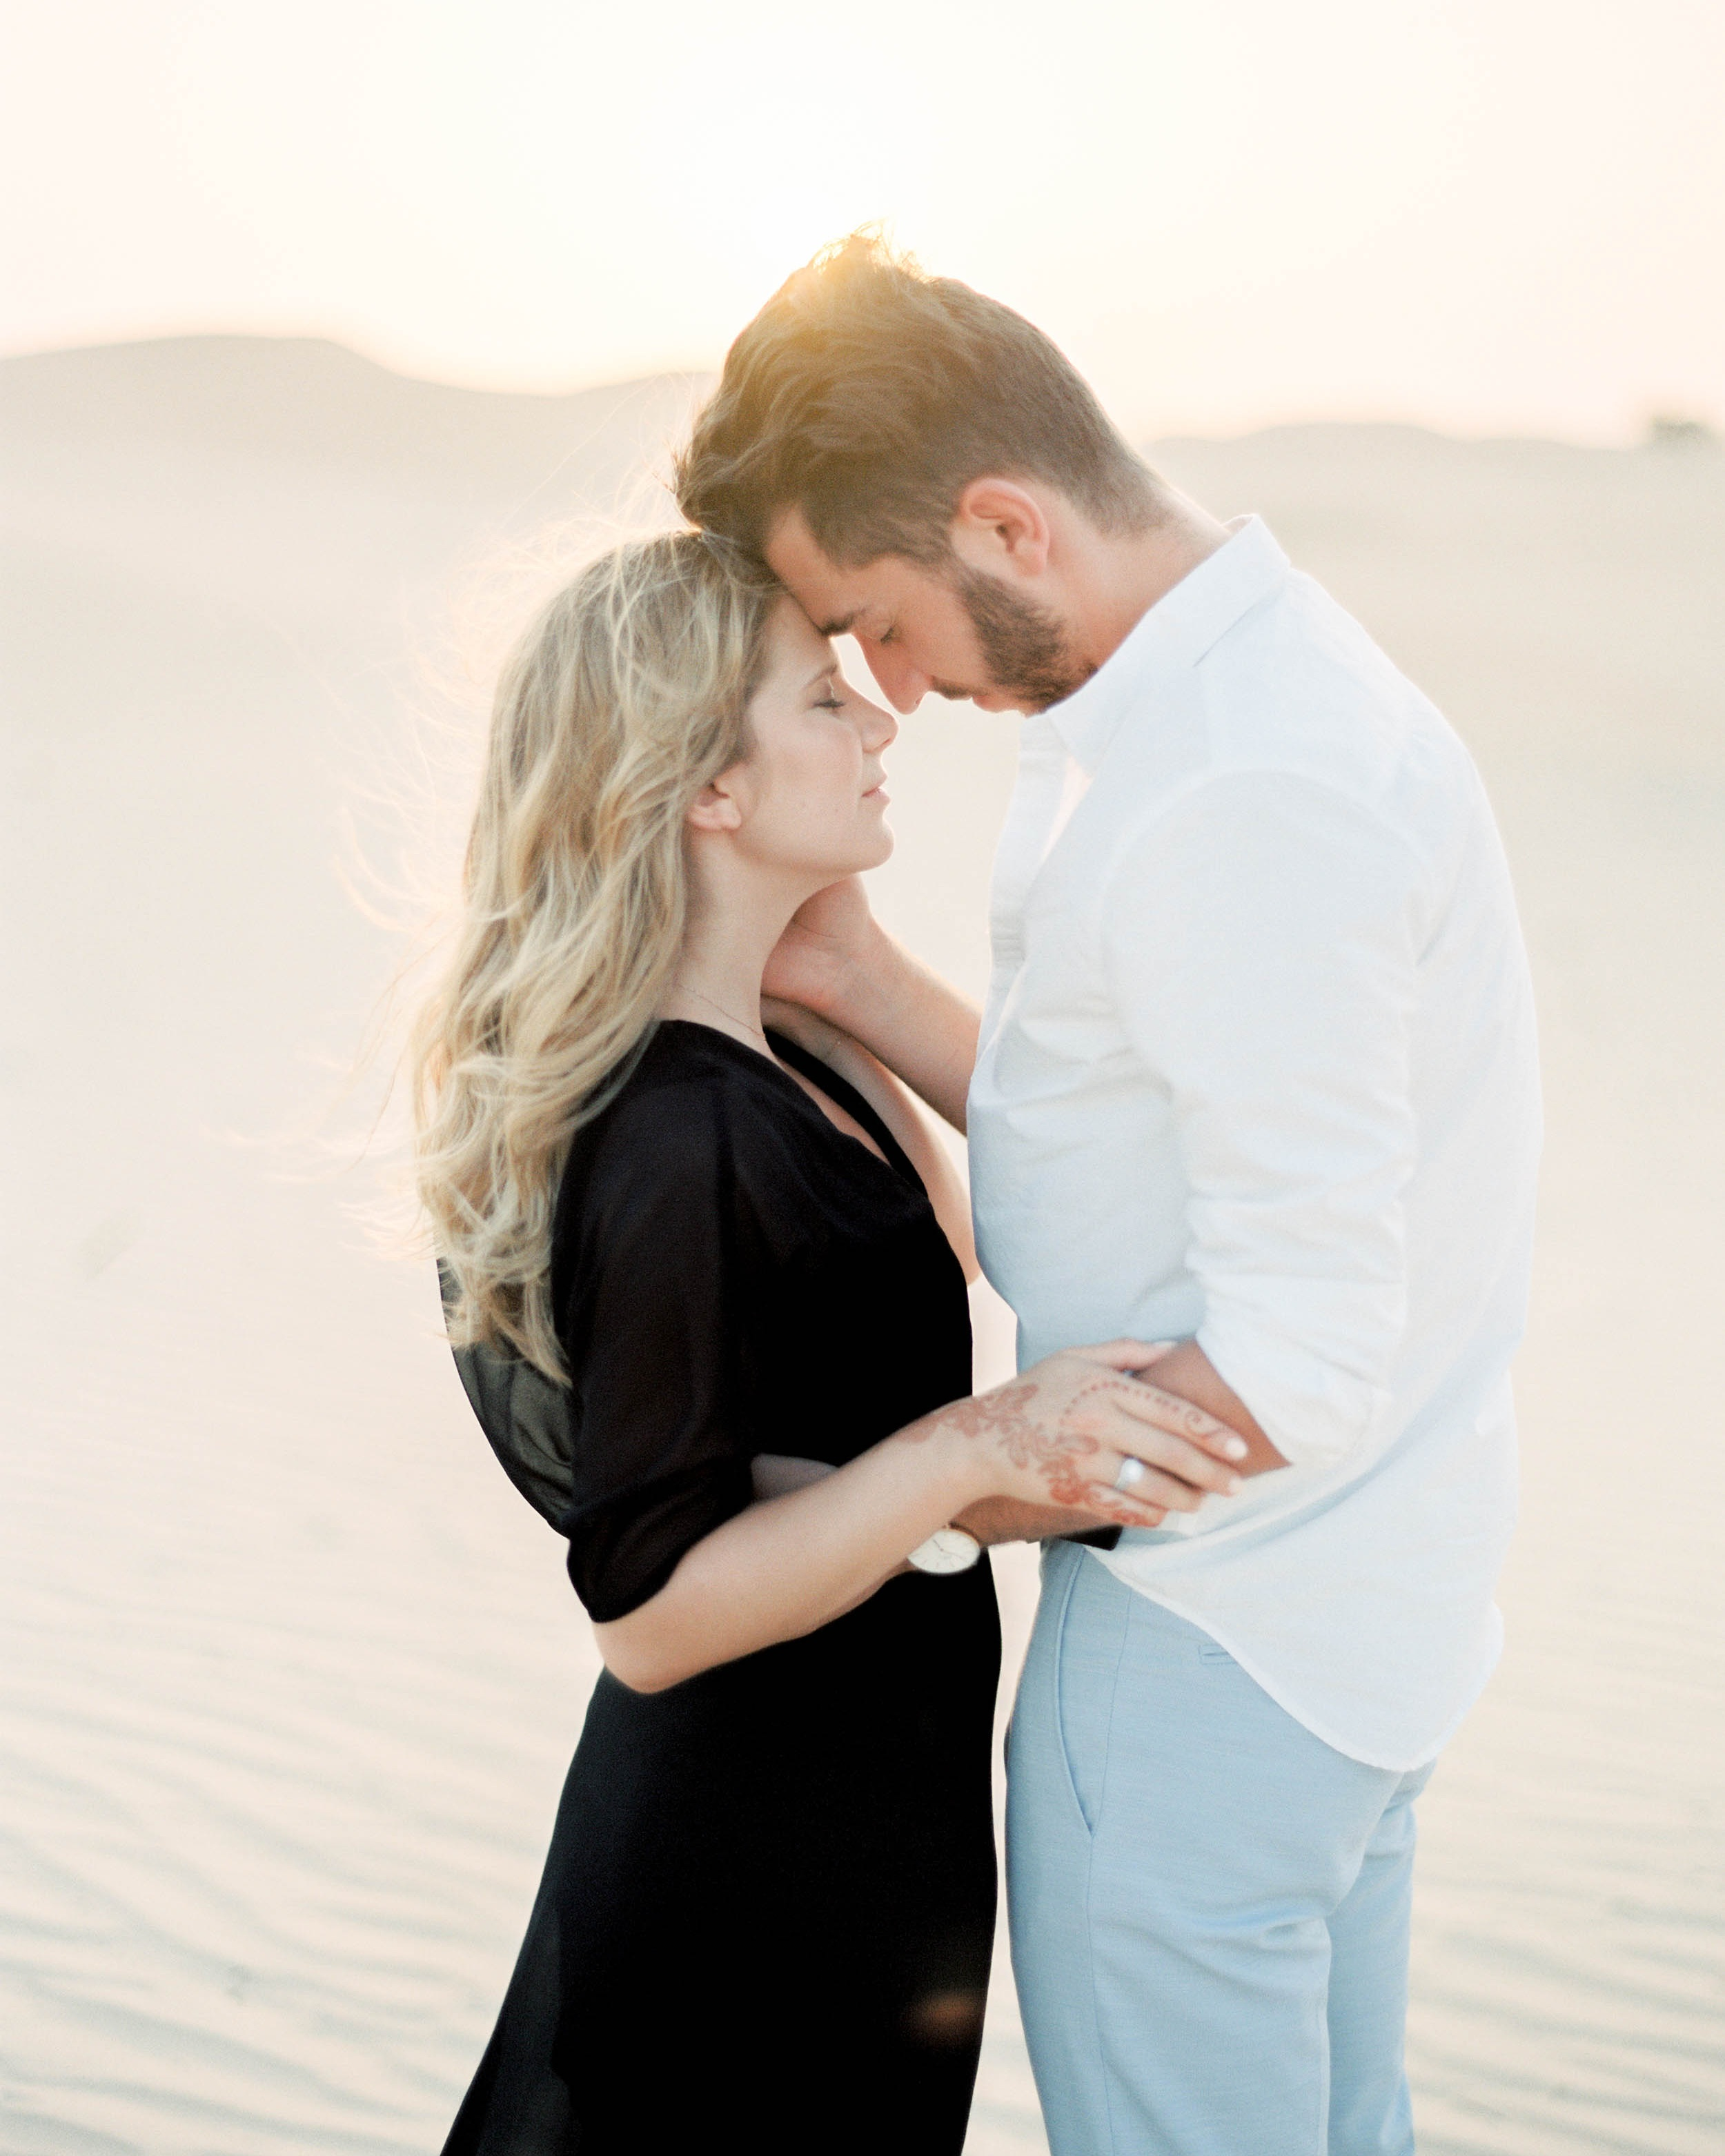 alina_and_sebastian_engagement_wedding_photography-4.jpg